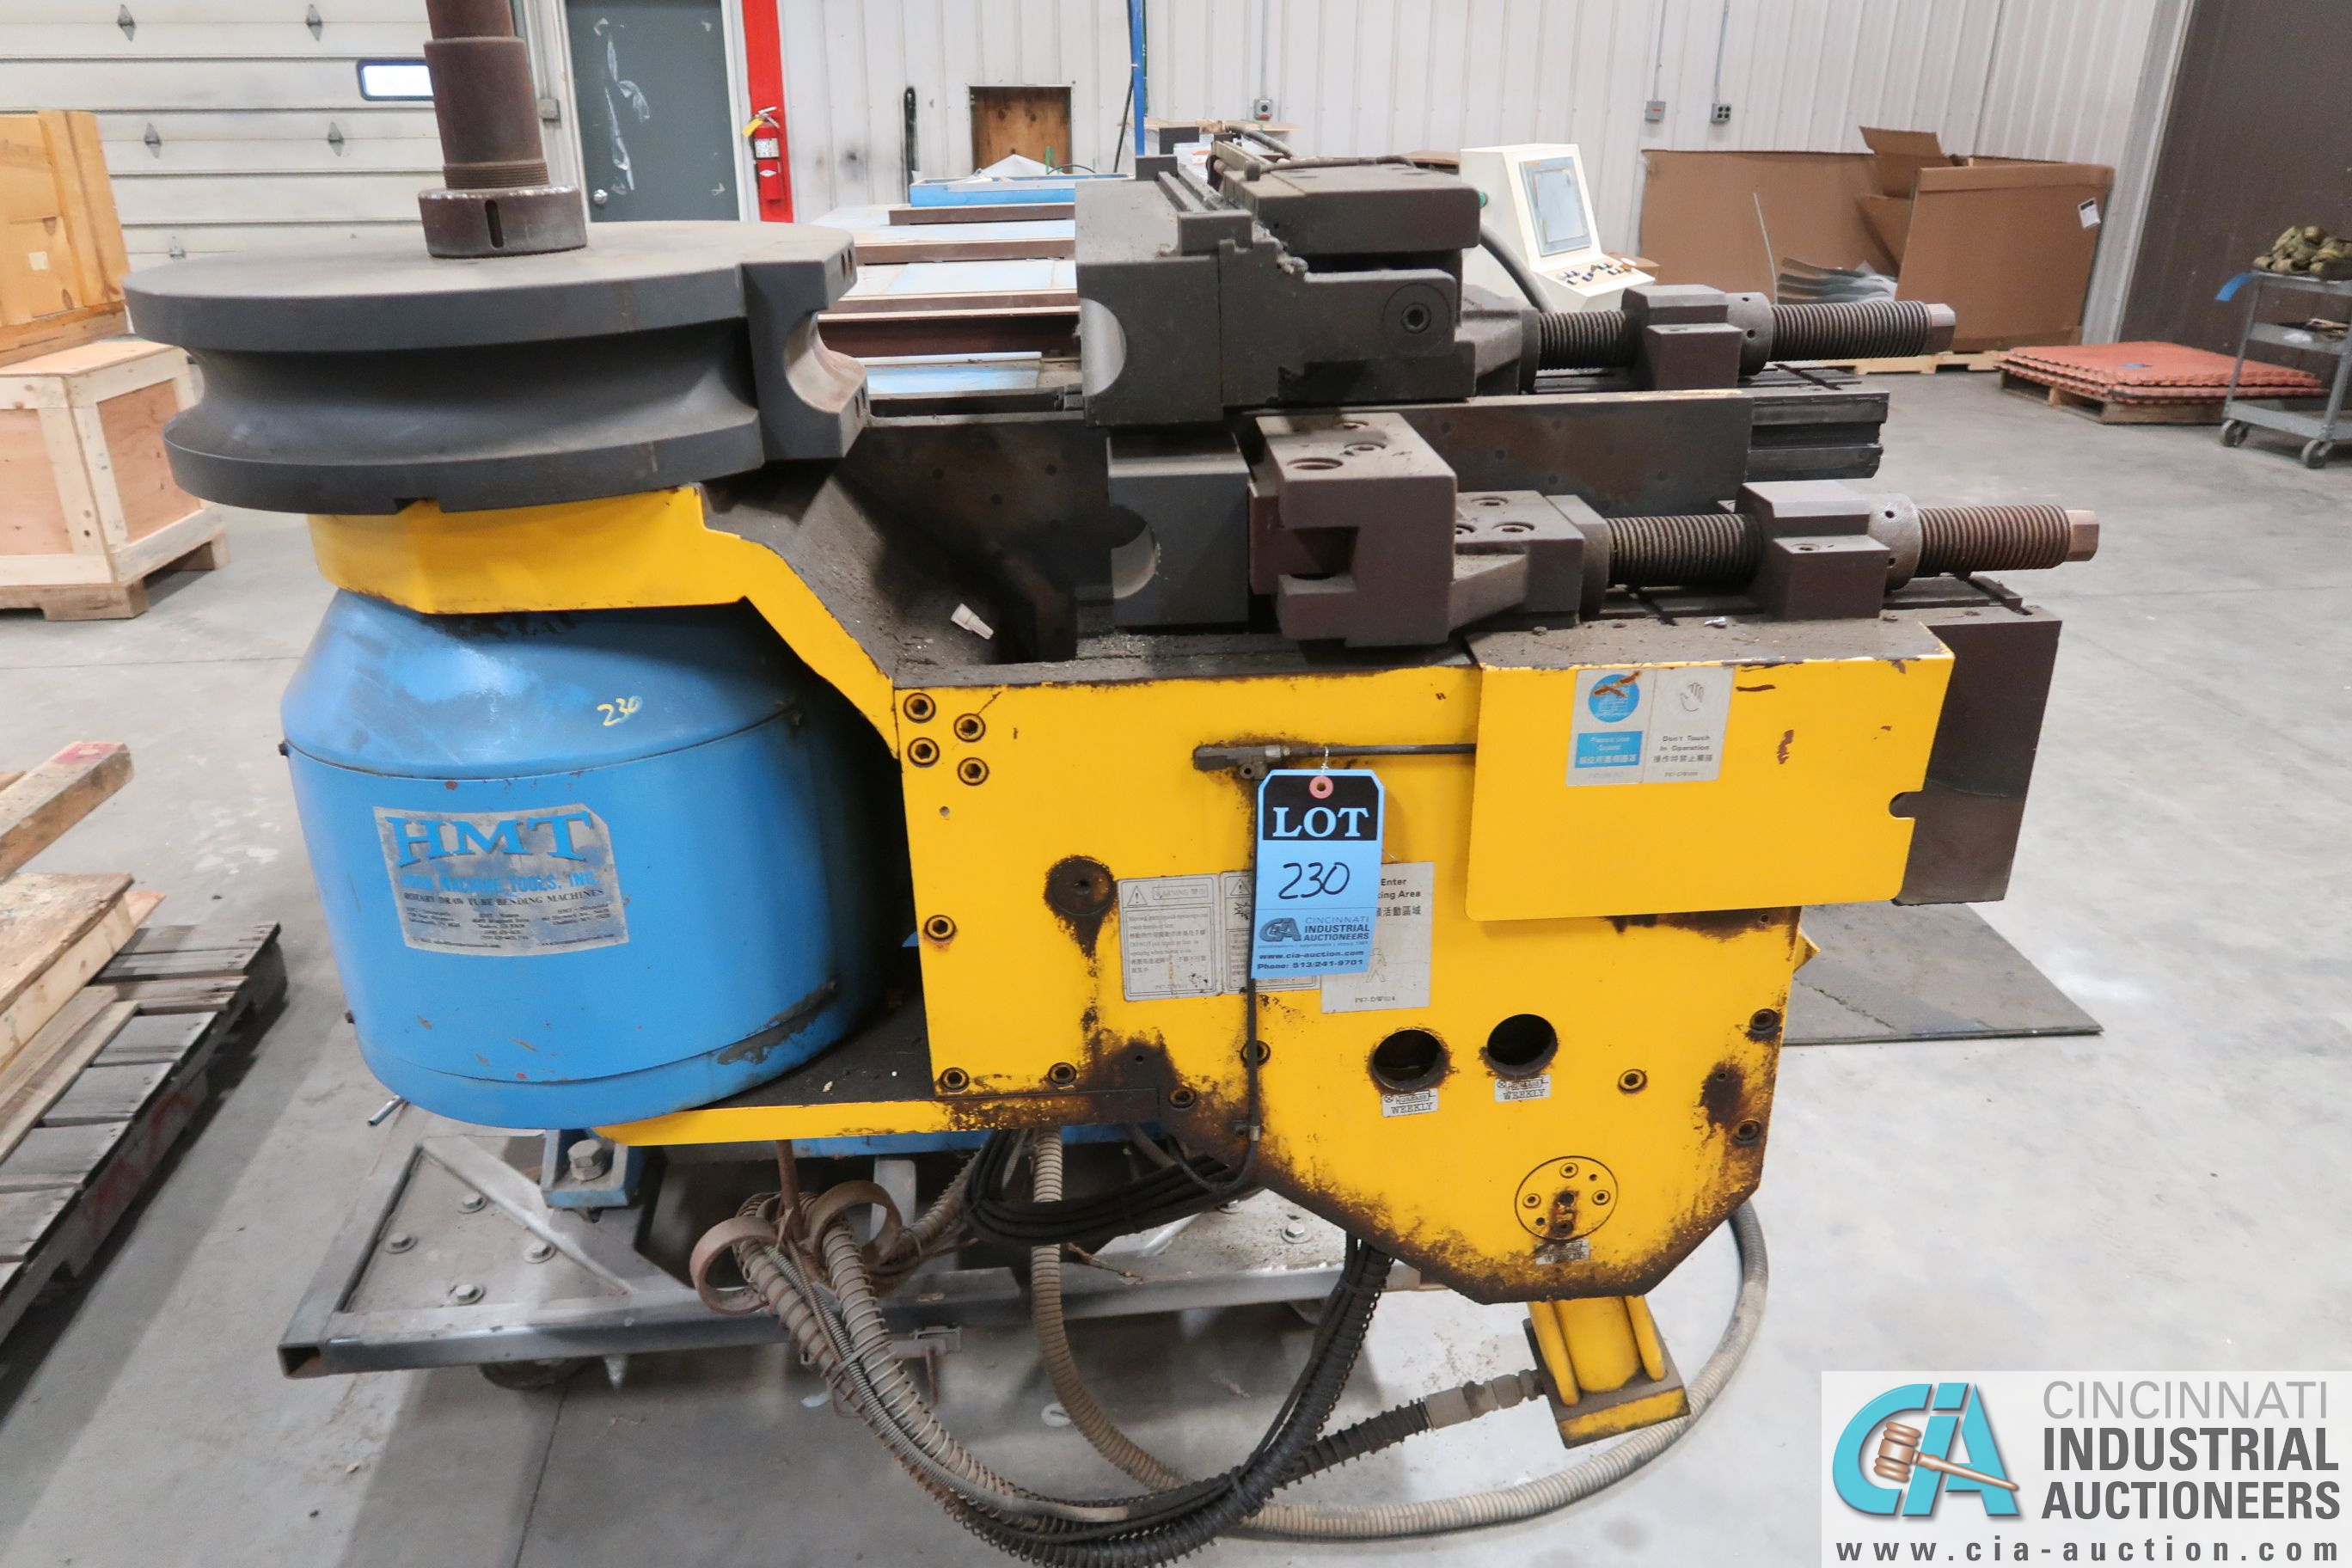 """4"""" HORN MODEL A100 TNCB CNC HYDRAULIC TUBE BENDER; S/N 080334-434B, CAPACITIES: 4"""" X .217 MILL STEEL - Image 8 of 11"""